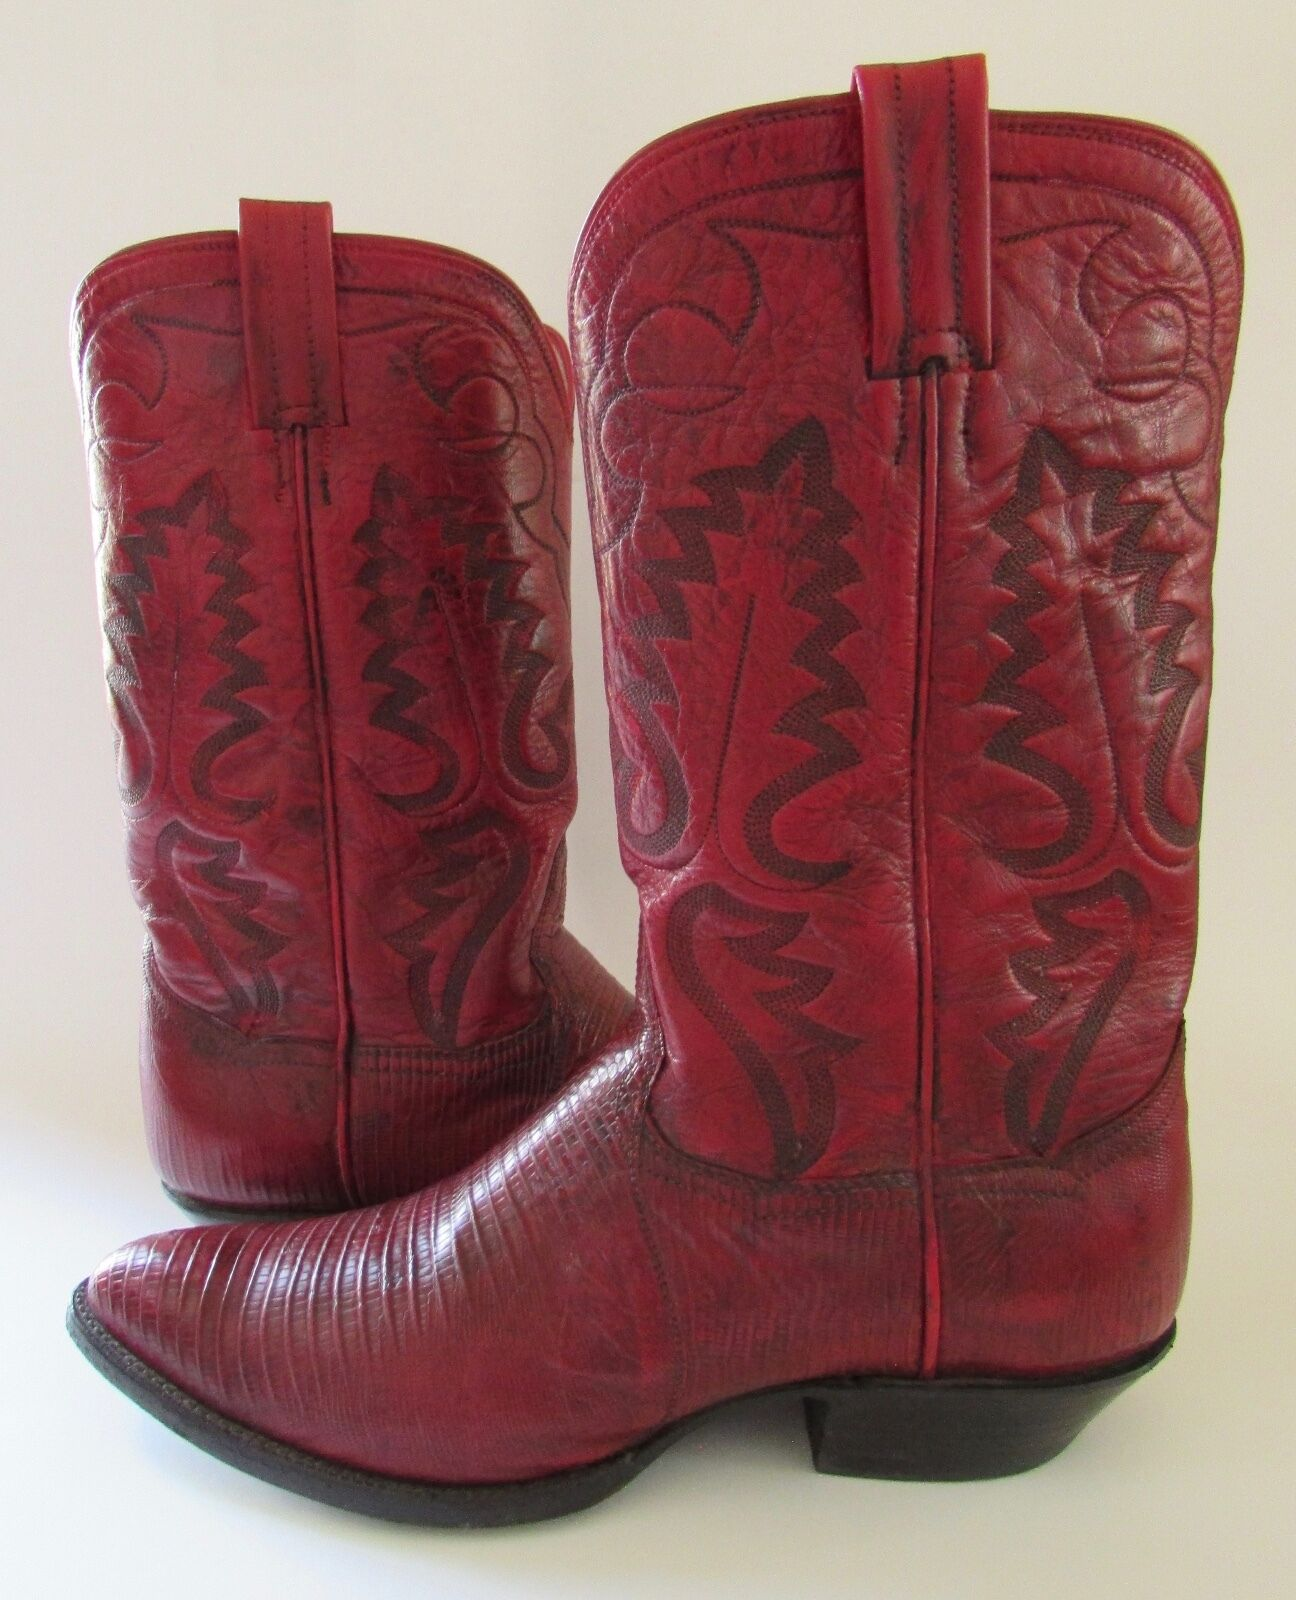 Panhandle Slim Red Leather Western Cowboy Boots 8.5 B